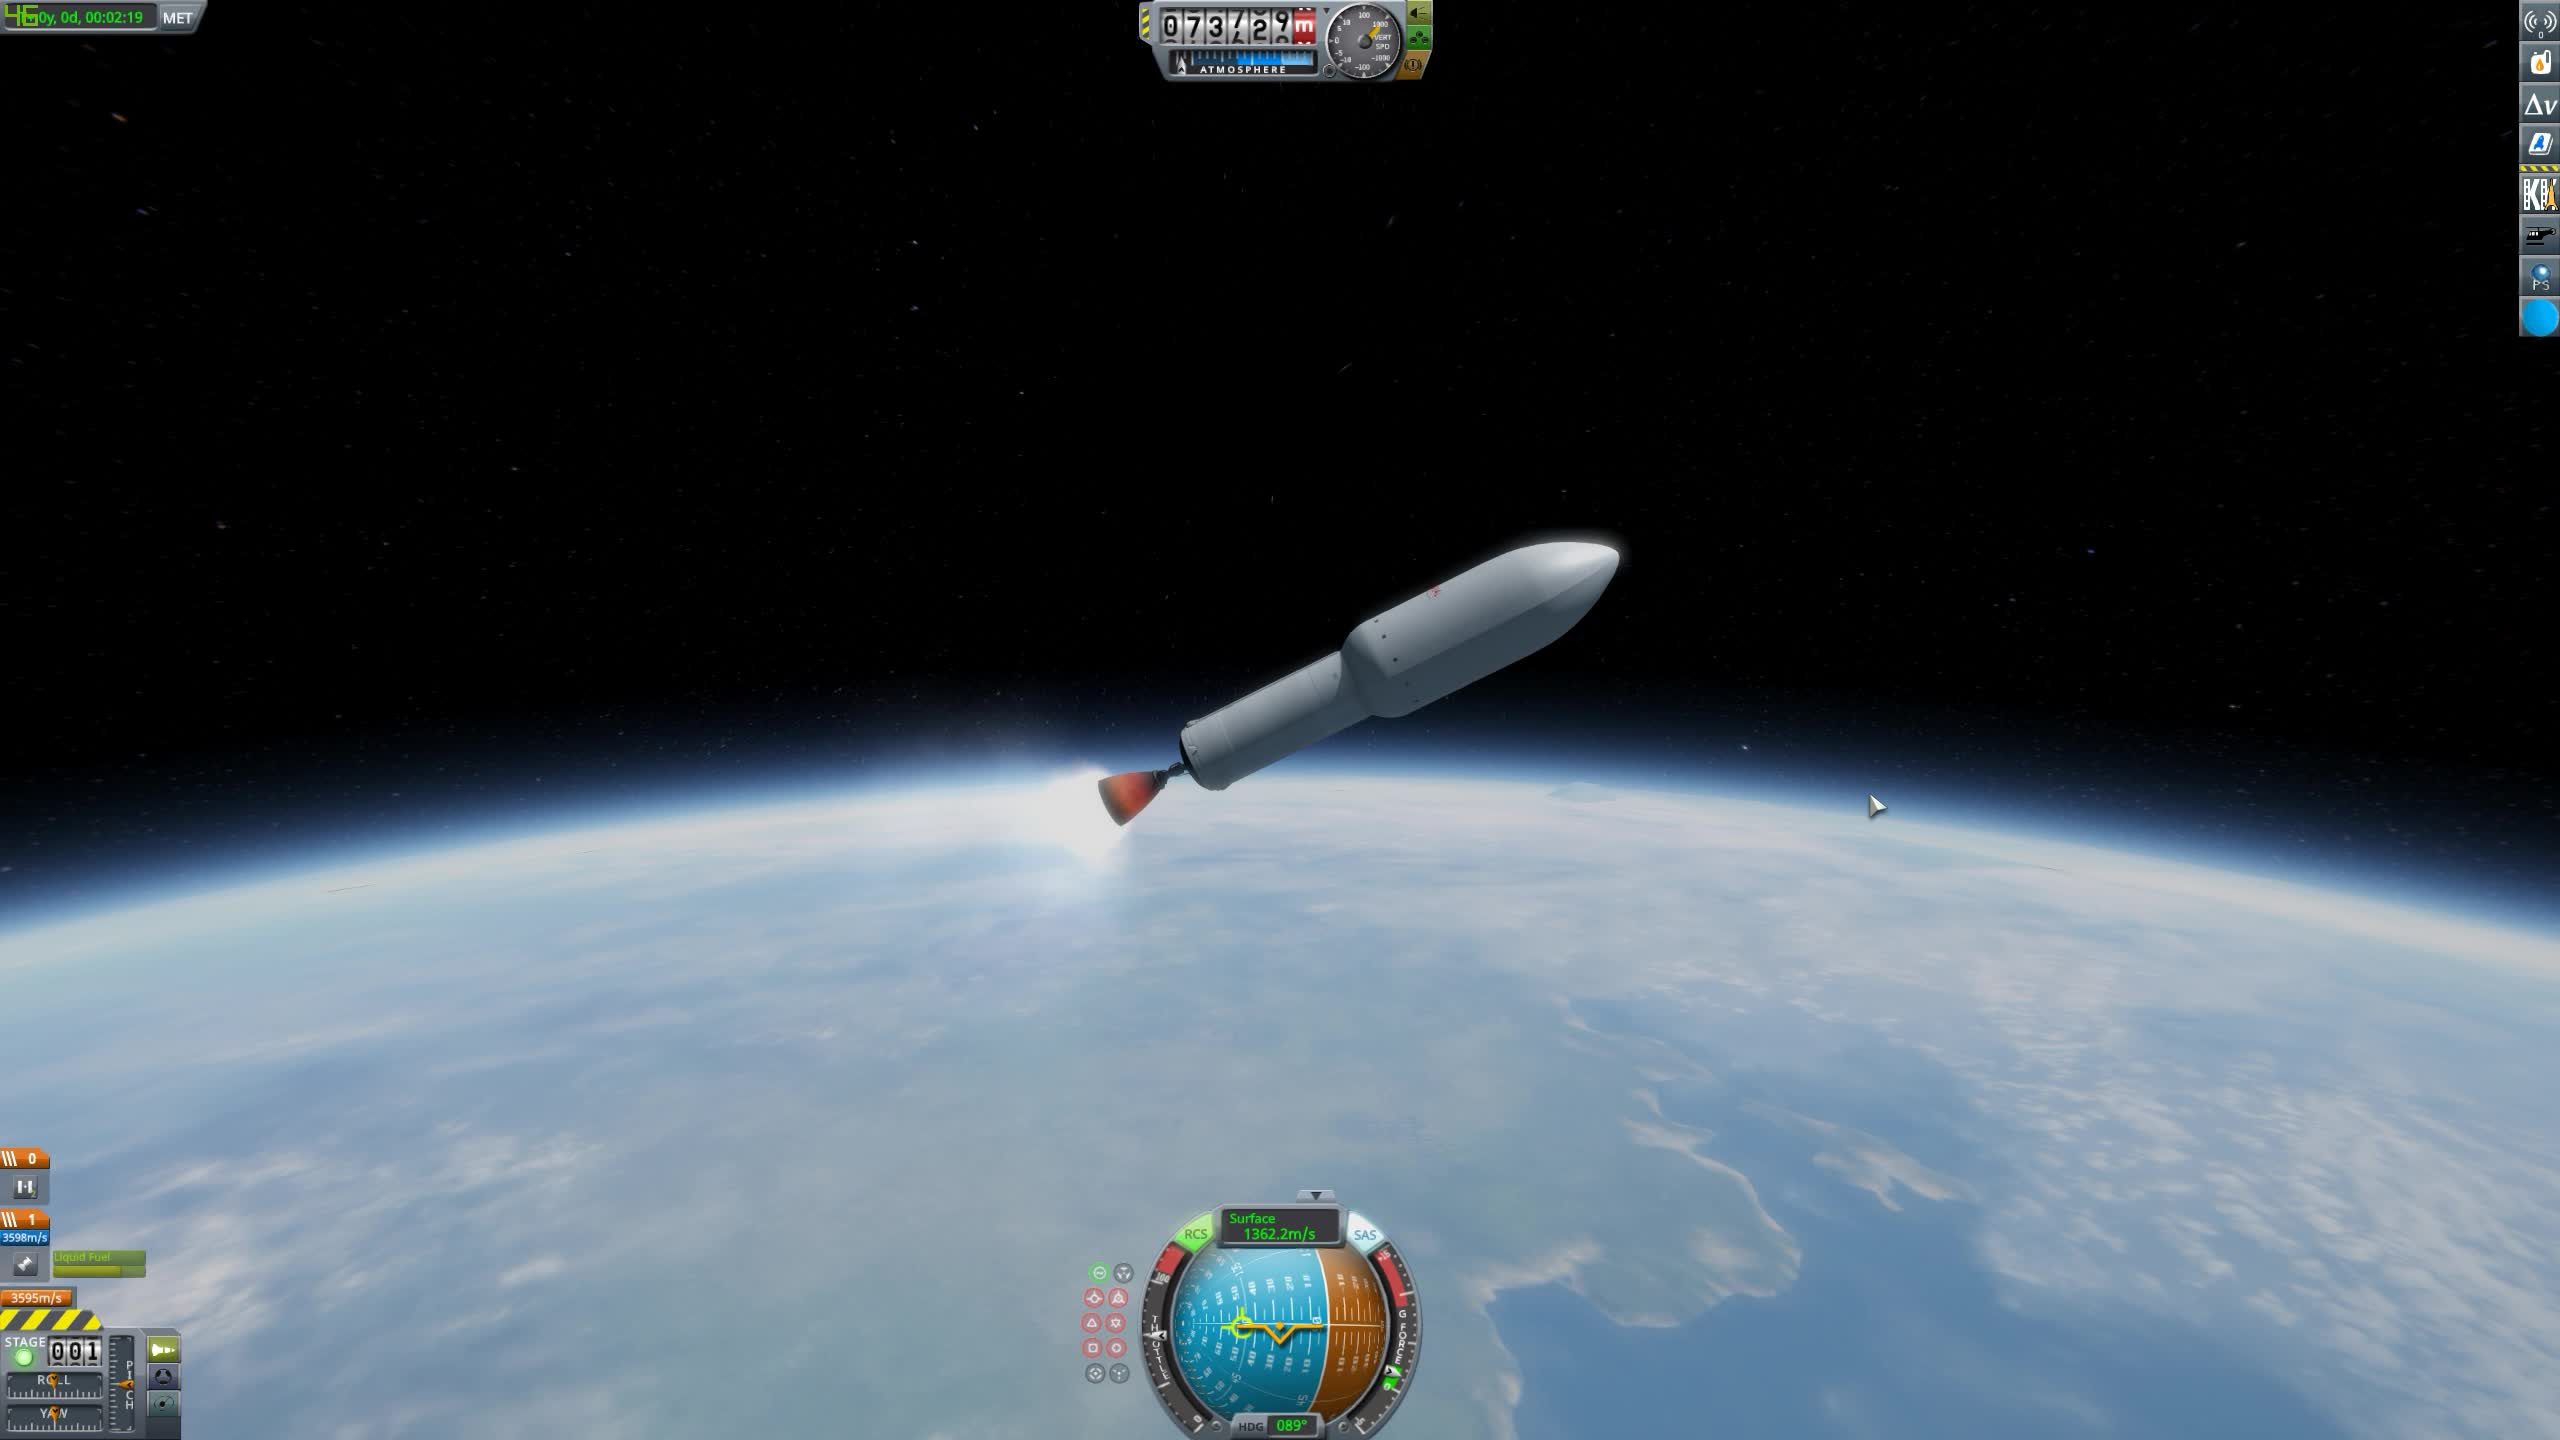 kerbalspaceprogram, Kerbal Space Program 2019.03.07 - 00.05.44.05 GIFs